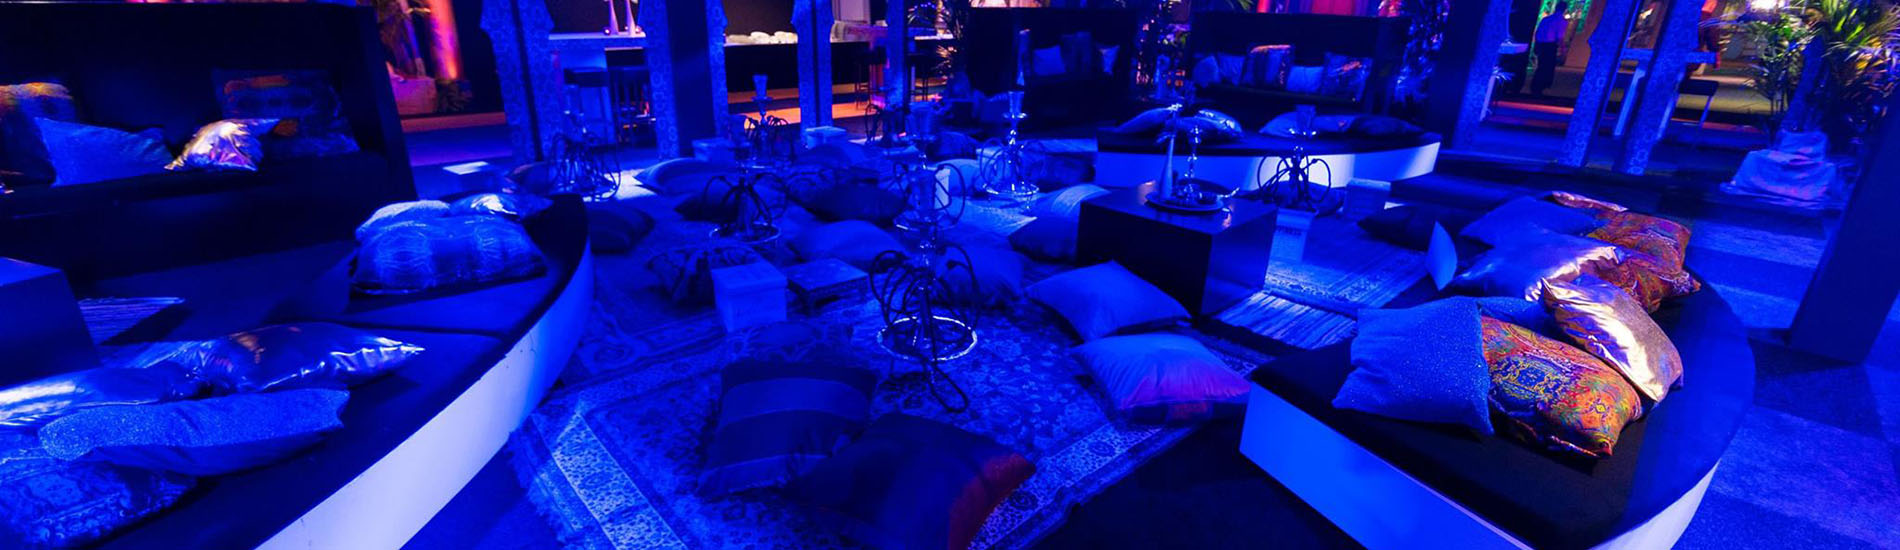 Doe entertainment waterpijp lounge gigworld HEADER 1